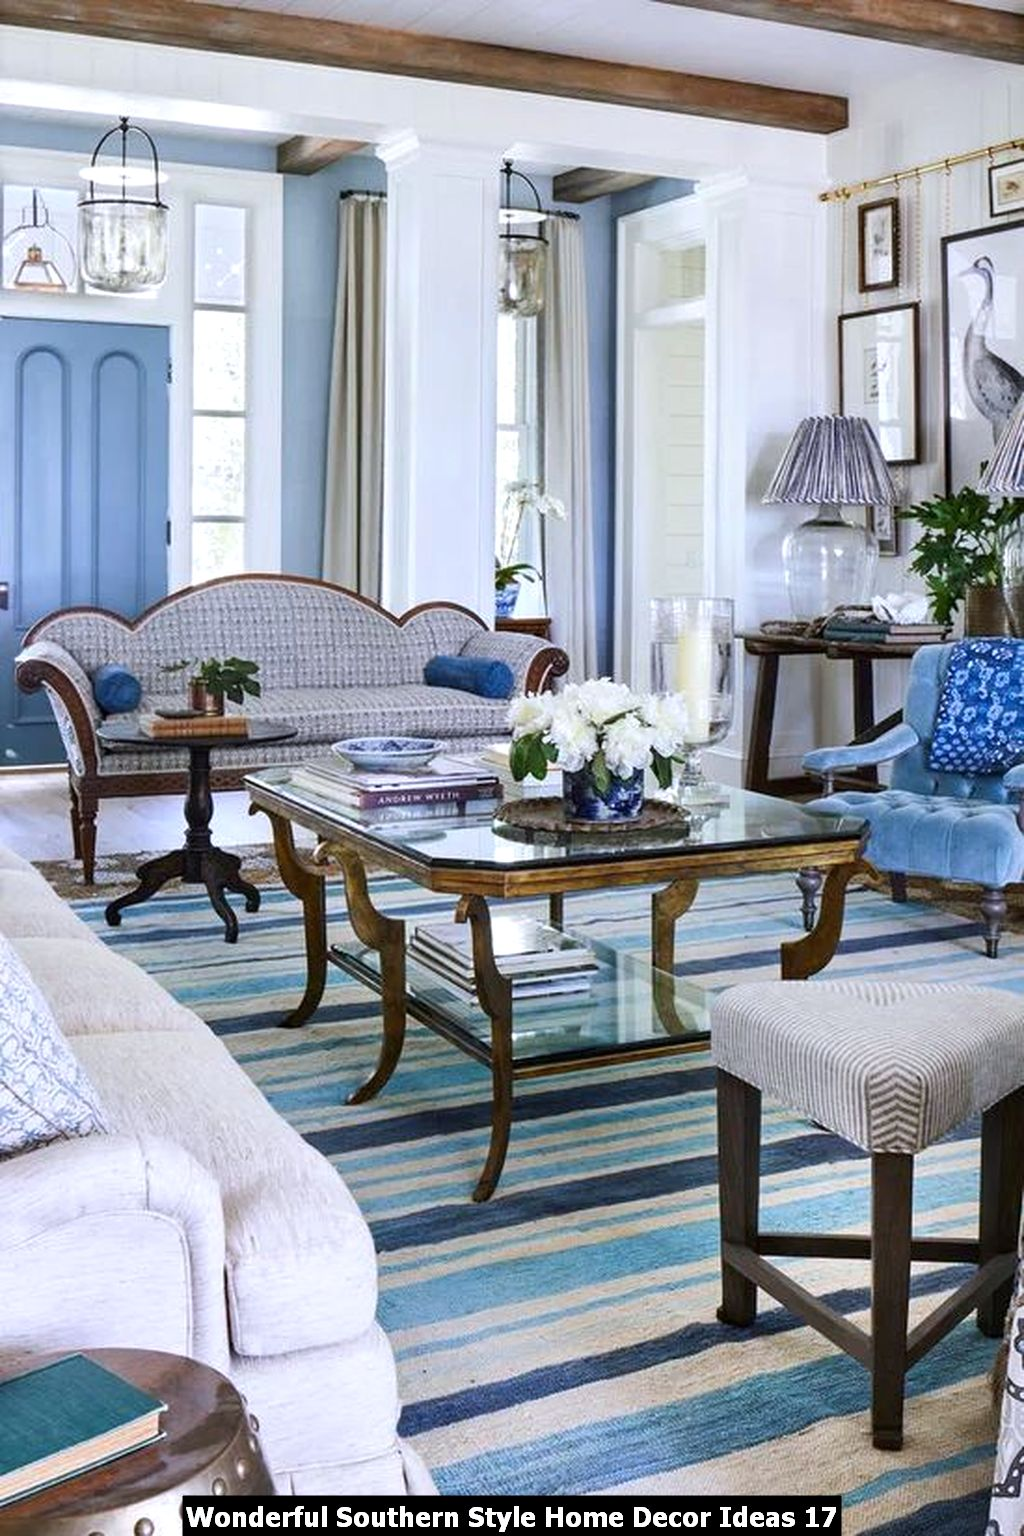 Wonderful Southern Style Home Decor Ideas 17